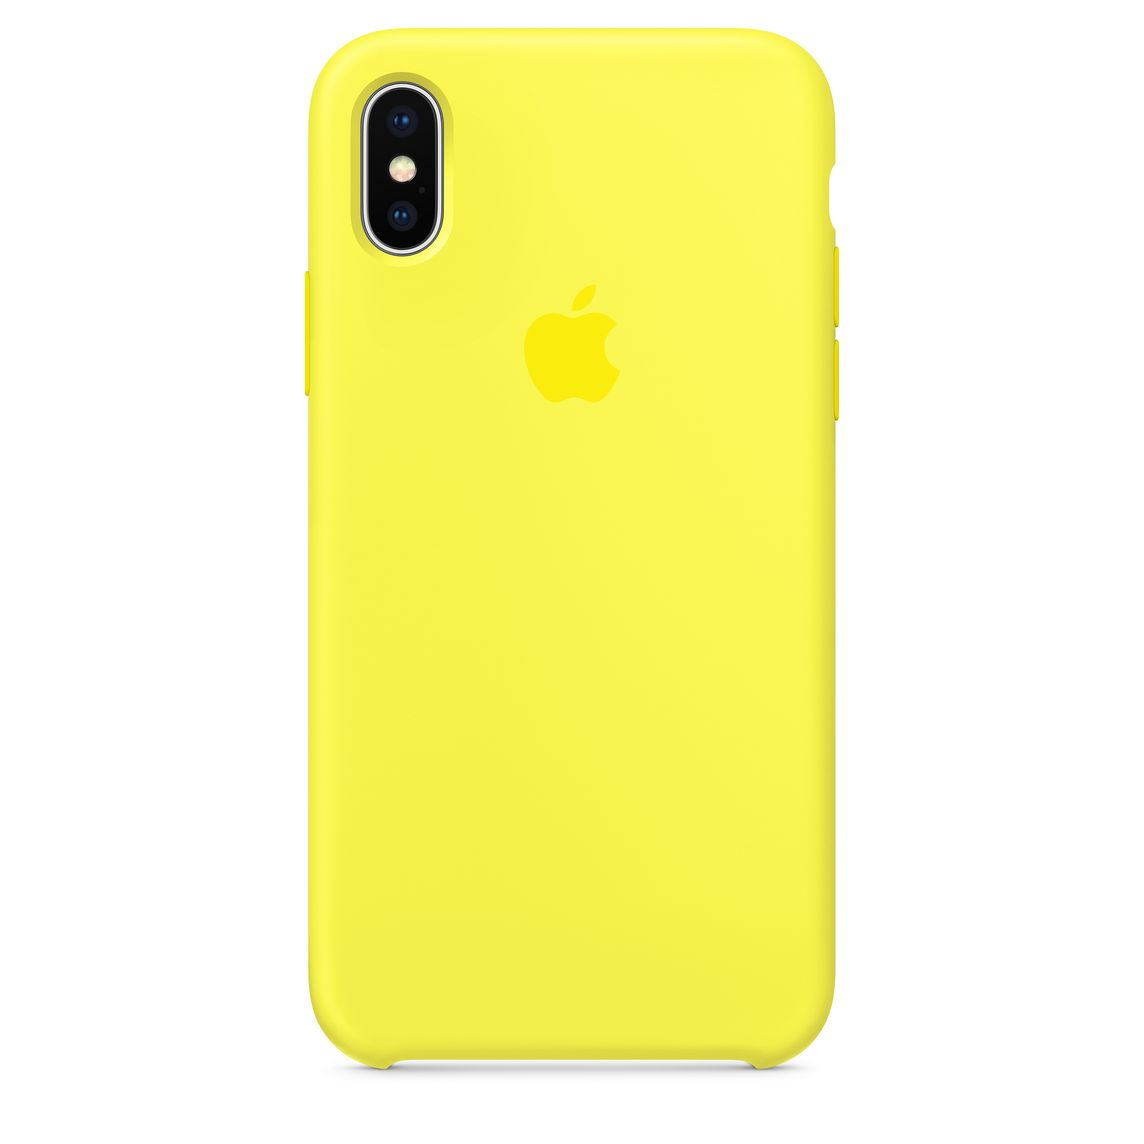 cheap for discount 6c0d9 c2f8d iPhone X Silicone Case - Flash